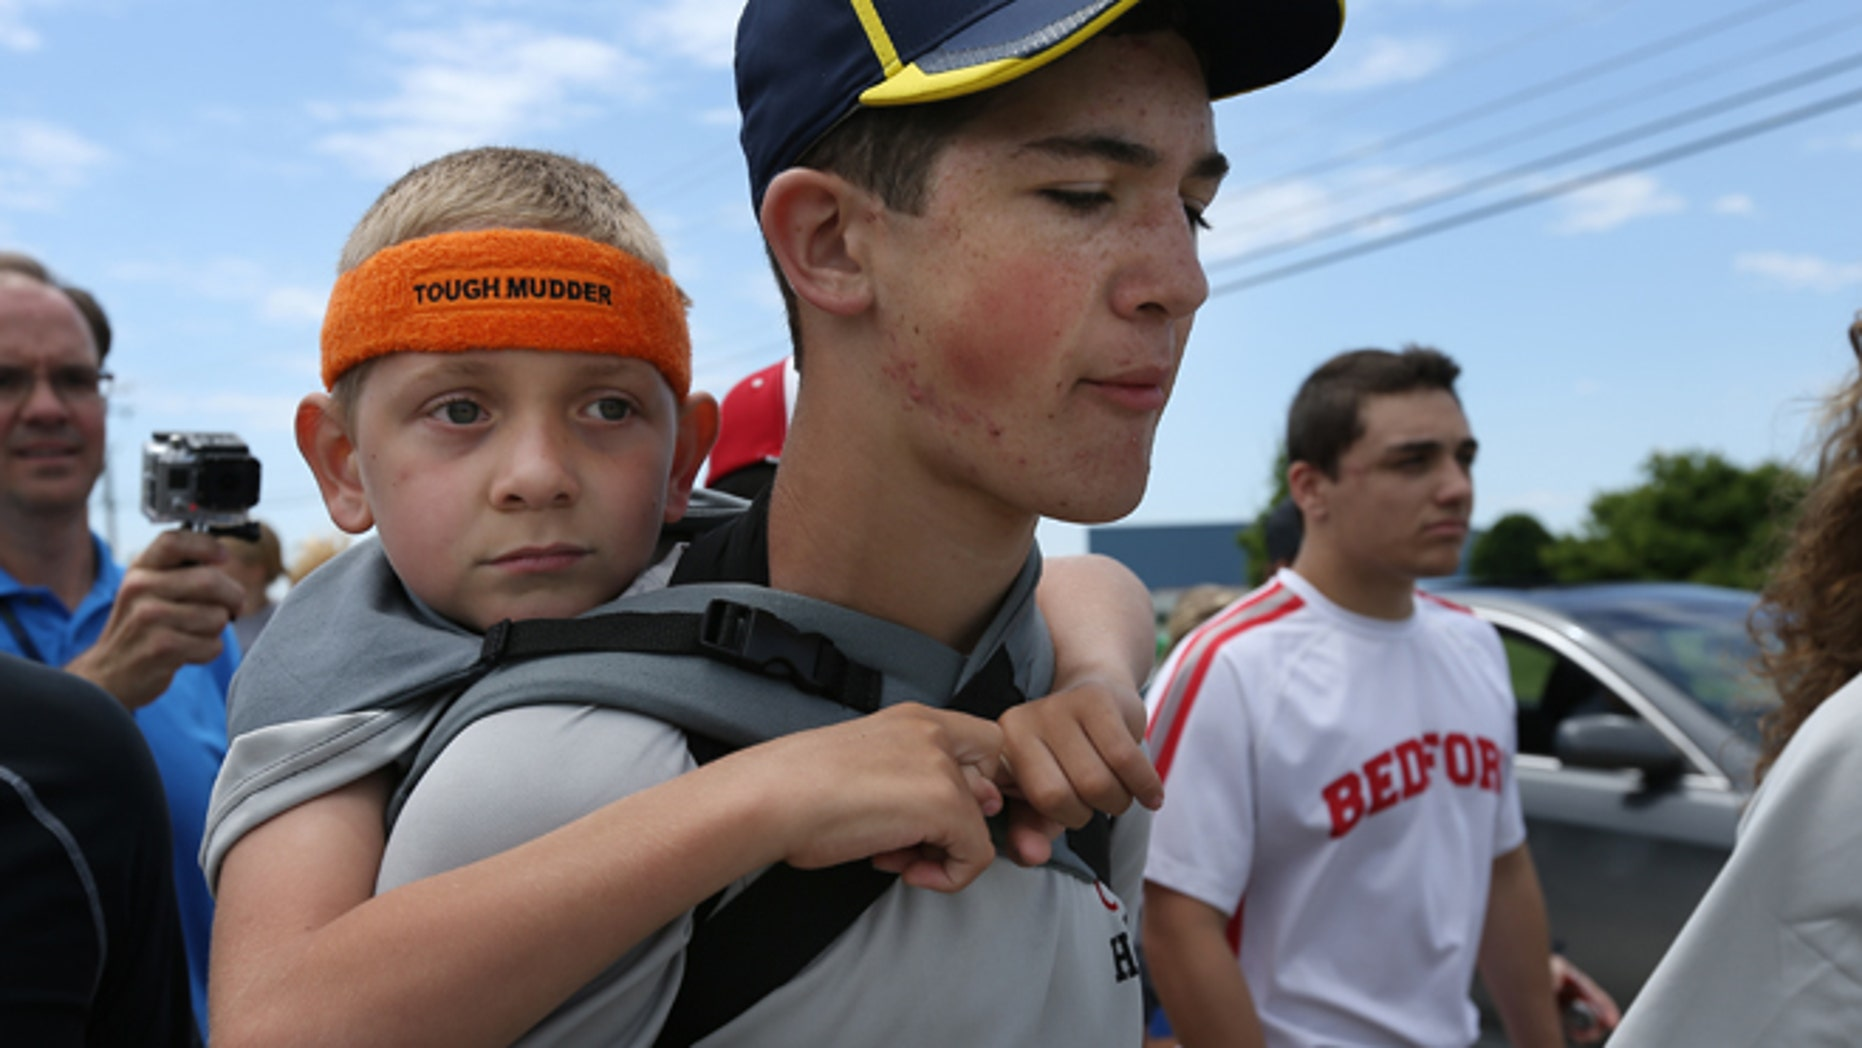 June 8, 2014:  Braden Gandee, 7, rides on his brother Hunter's, 14, shoulders as they close in on the final miles to the University of Michigan Bahna Wrestler Center. Hunter carried Braden, who has cerebral palsy, 40 miles from Bedford, Mich. to Ann Arbor, Mich.